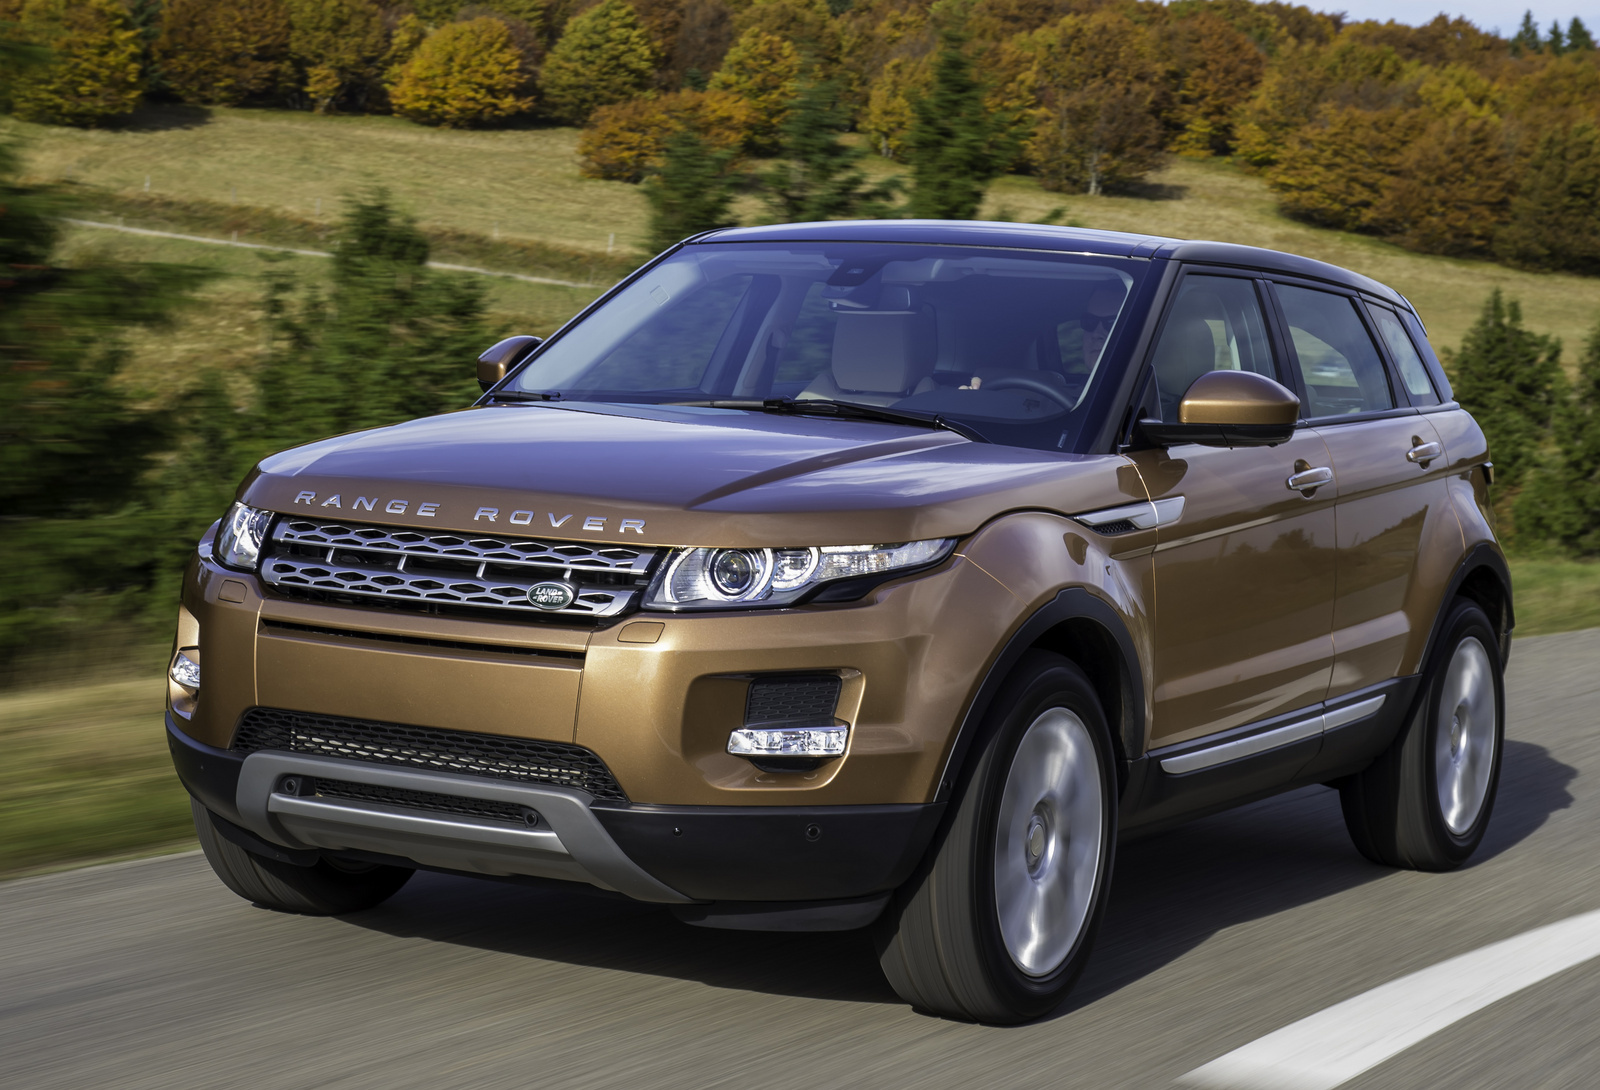 2014 land rover range rover evoque overview cargurus. Black Bedroom Furniture Sets. Home Design Ideas